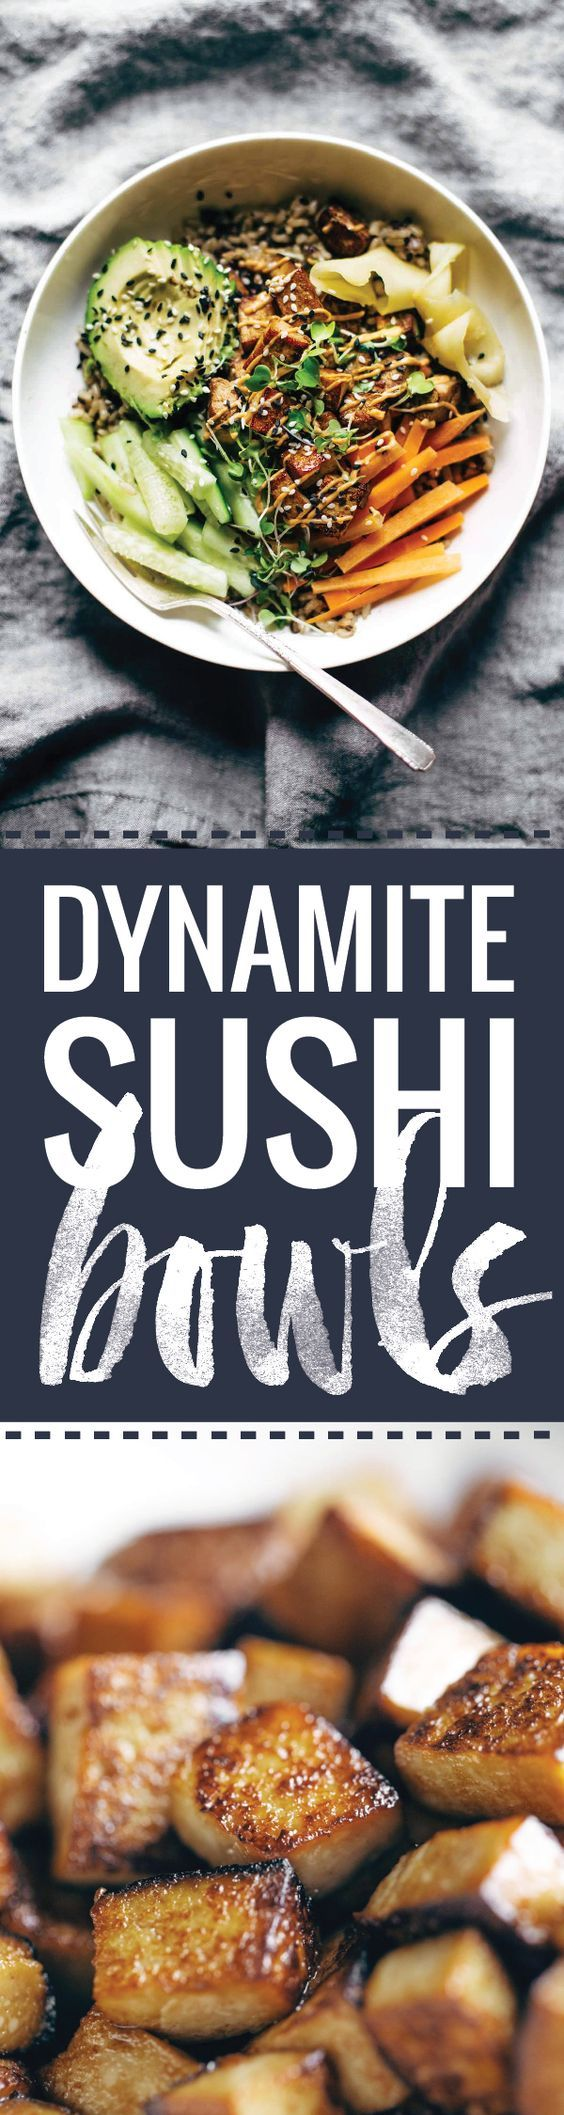 Dynamite Plant Power Sushi Bowls! just like a dynamite roll, but easier and healthier with tofu, avocado, cucumber, ginger, brown rice, and spicy mayo. Vegetarian / easily made vegan. | pinchofyum.com